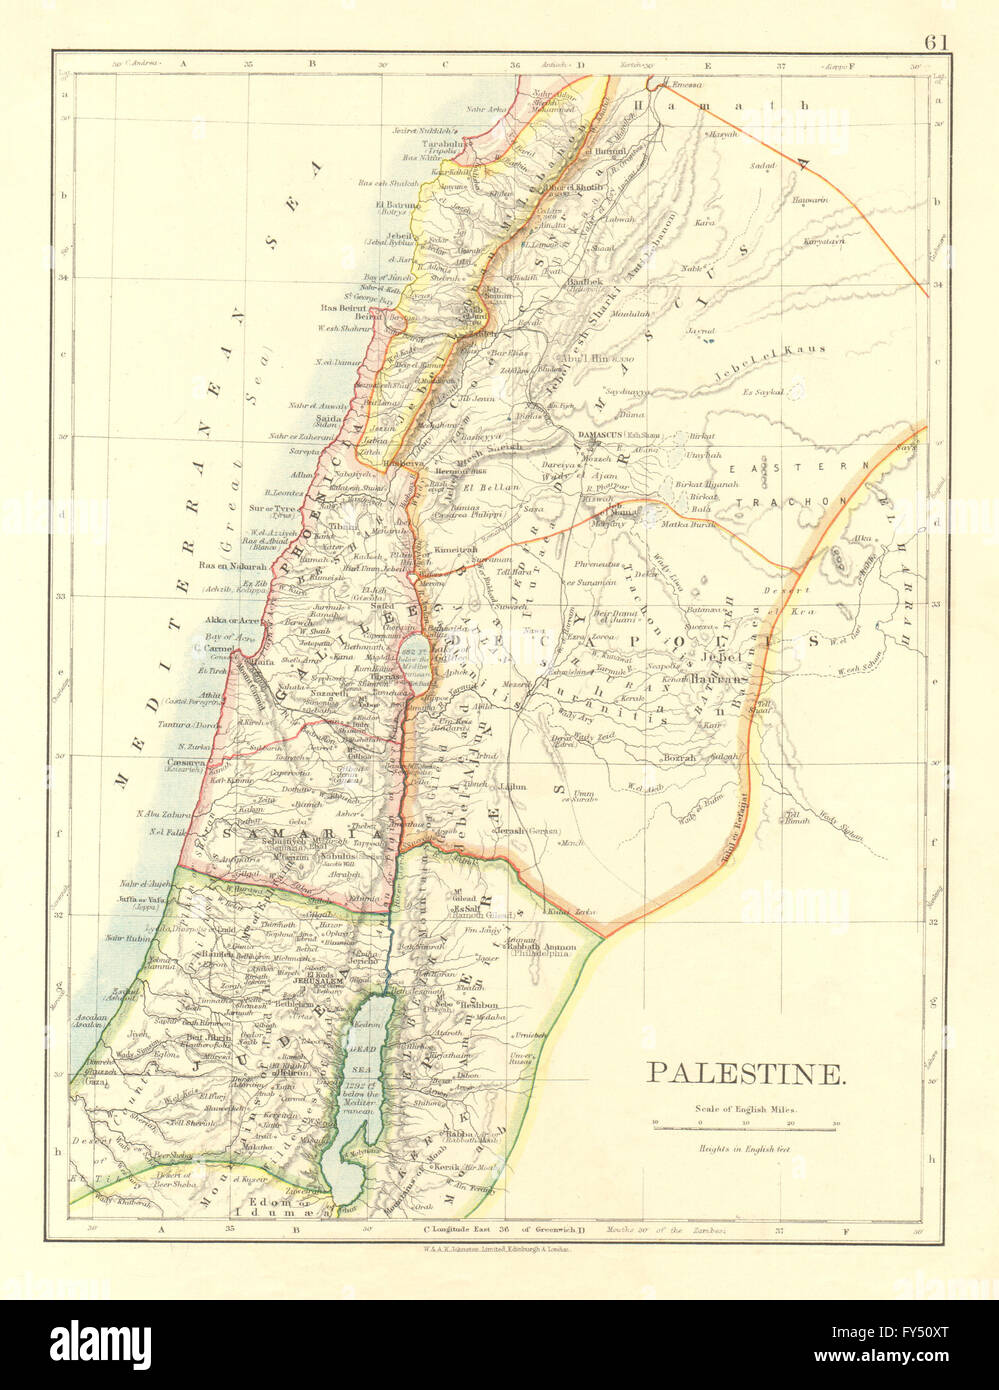 Palestine Galilee Samaria Judea Perea Phoenicia Decapolis Johnston 1906 Map